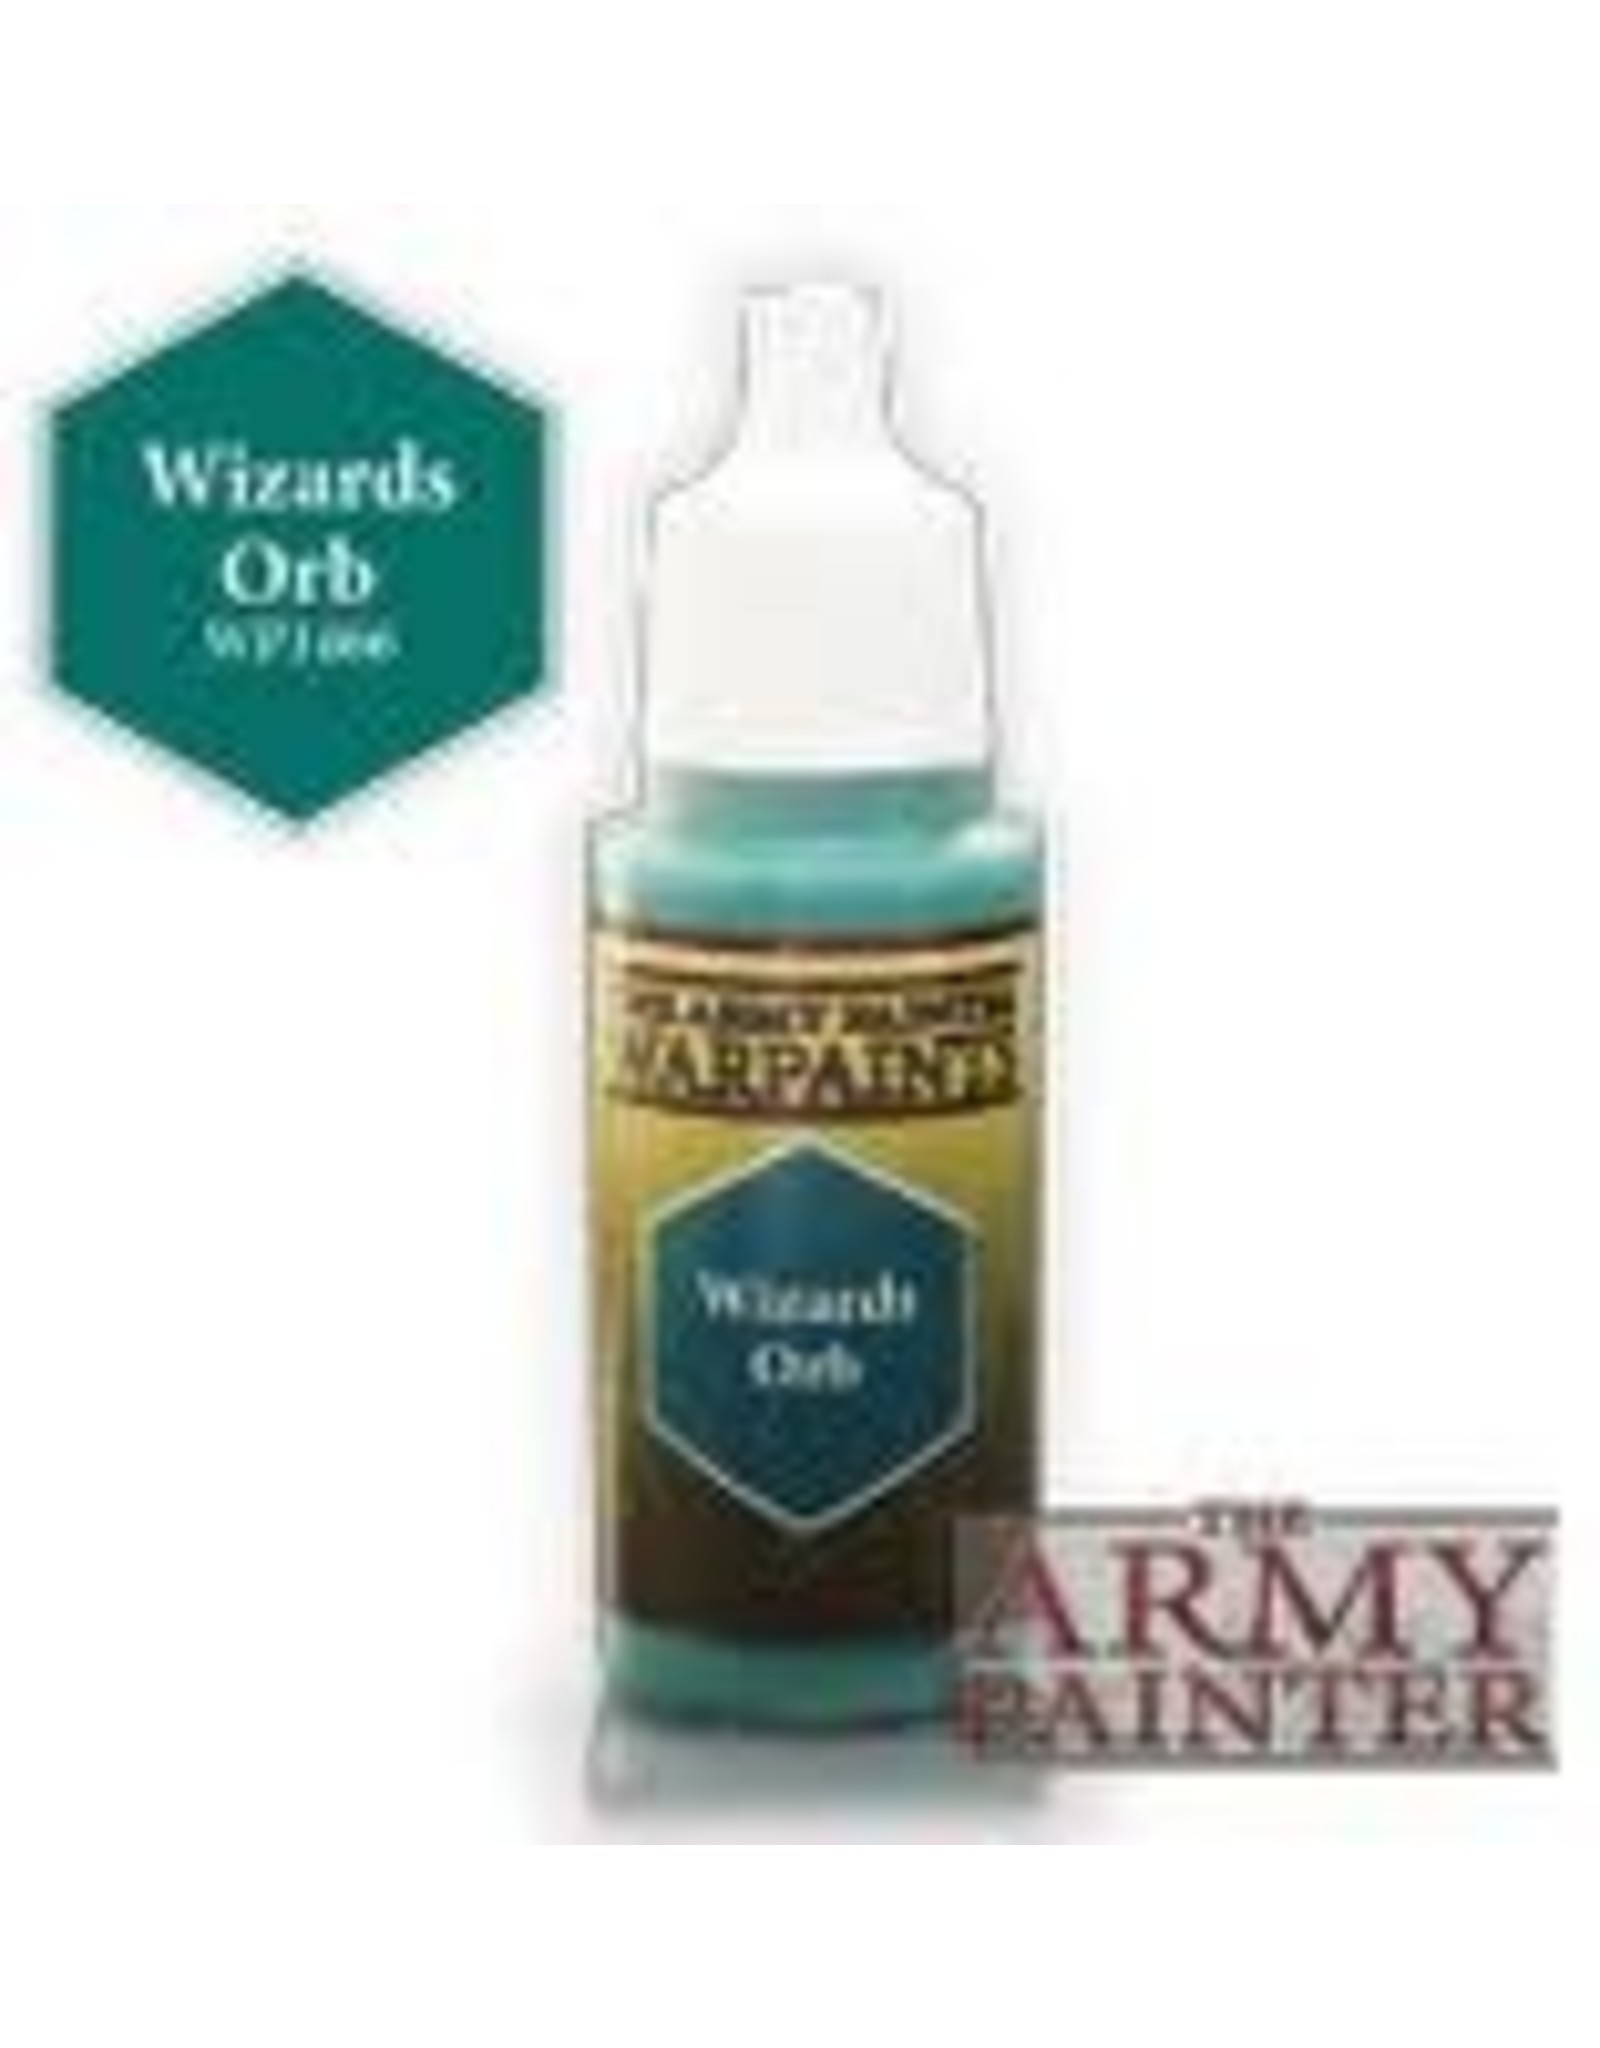 Army Painter Army Painter: Wizards Orb